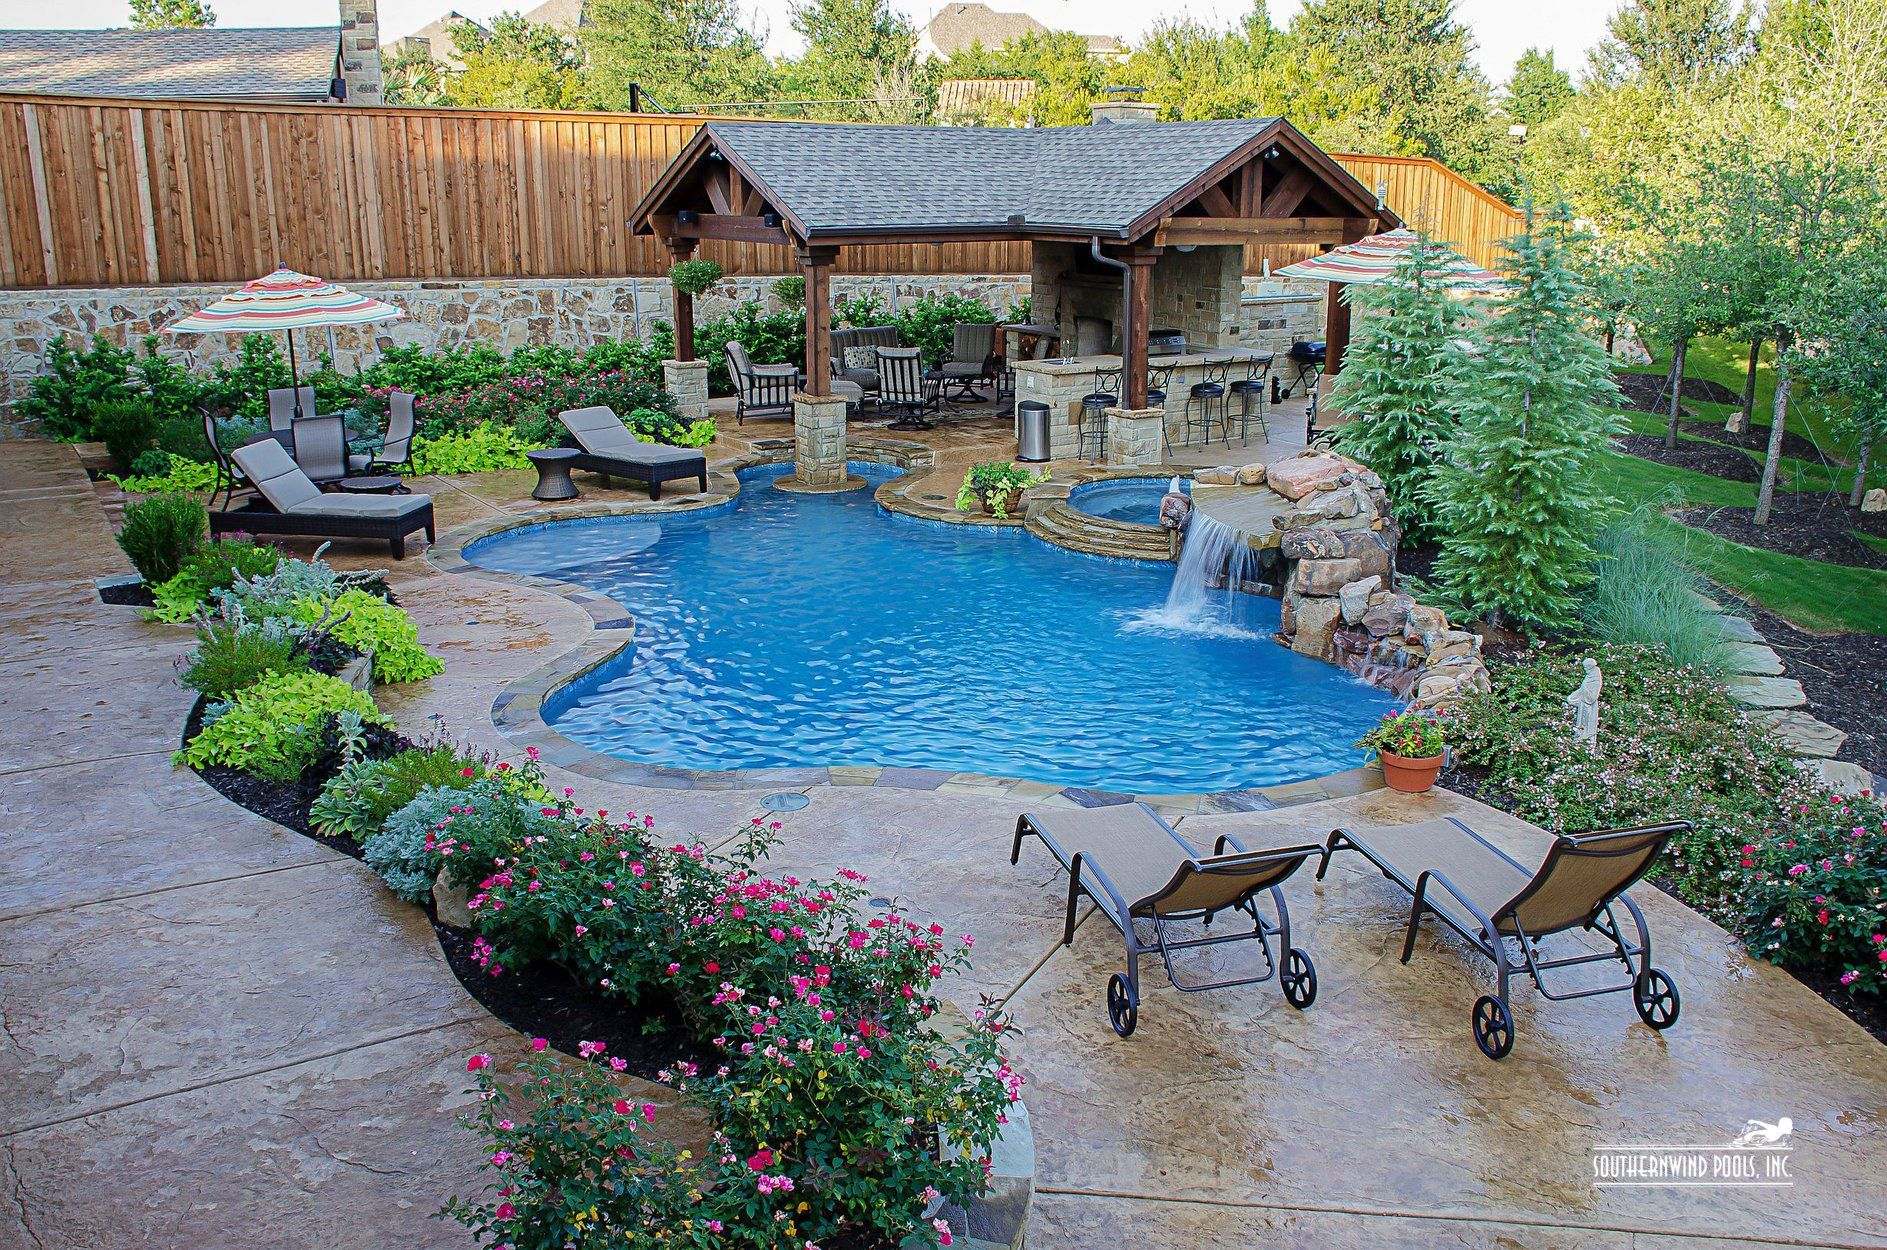 Natural Freeform Pool #169 By Southernwind Pools Pool Landscapingbackyard Poolspool